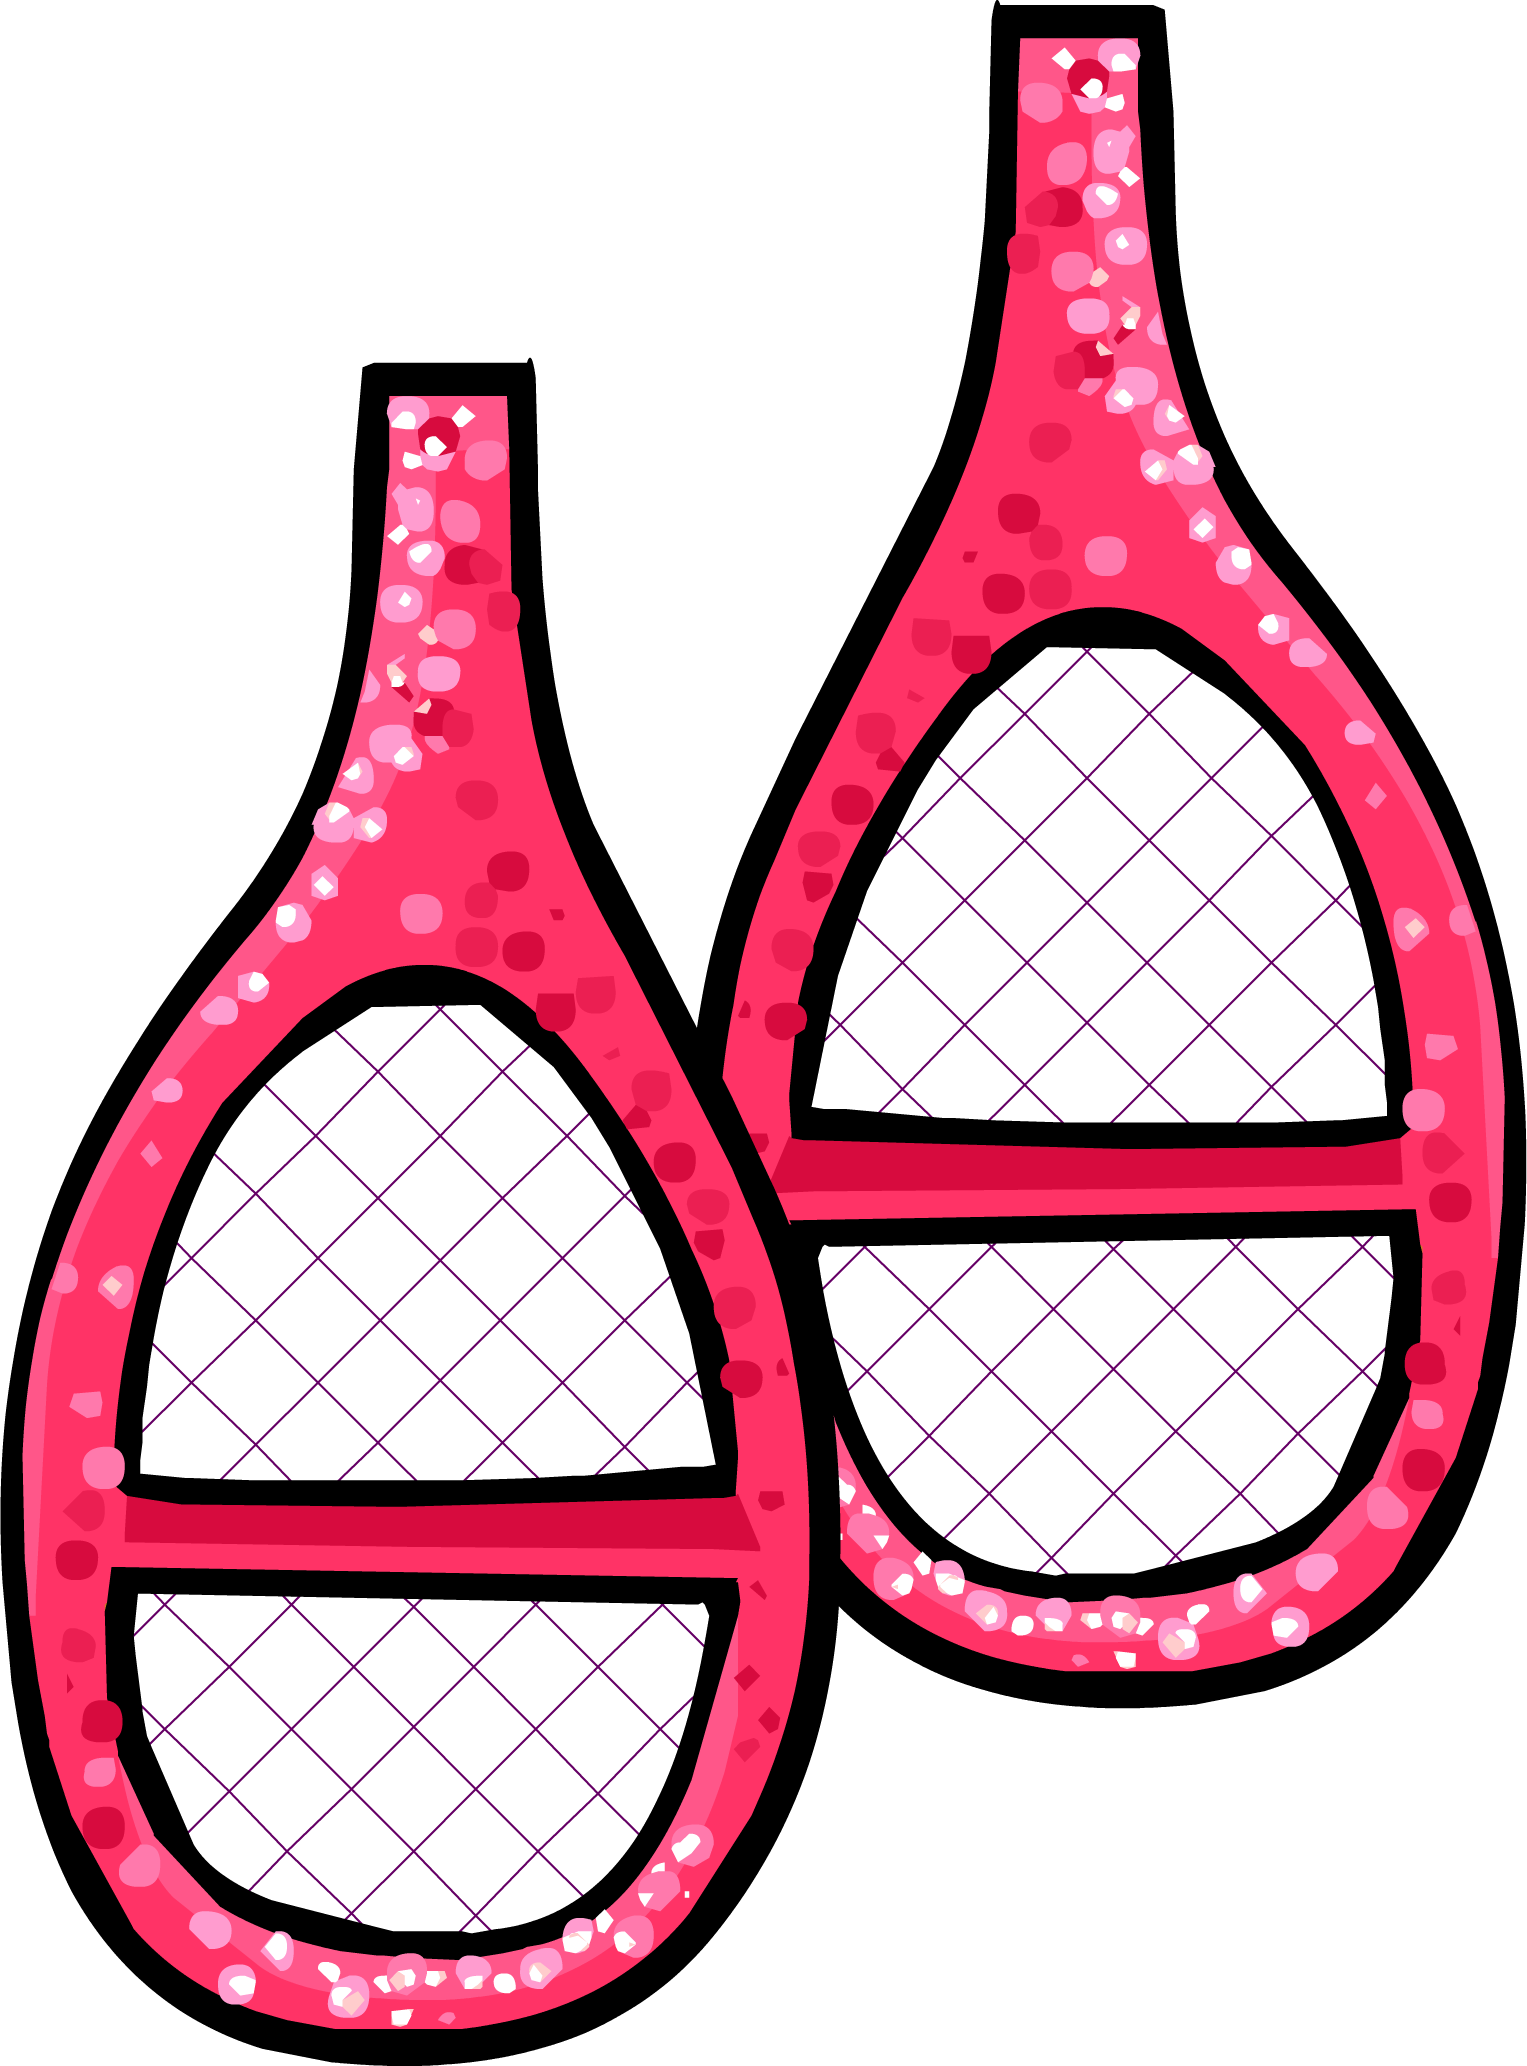 Pink Sparkly Snowshoes